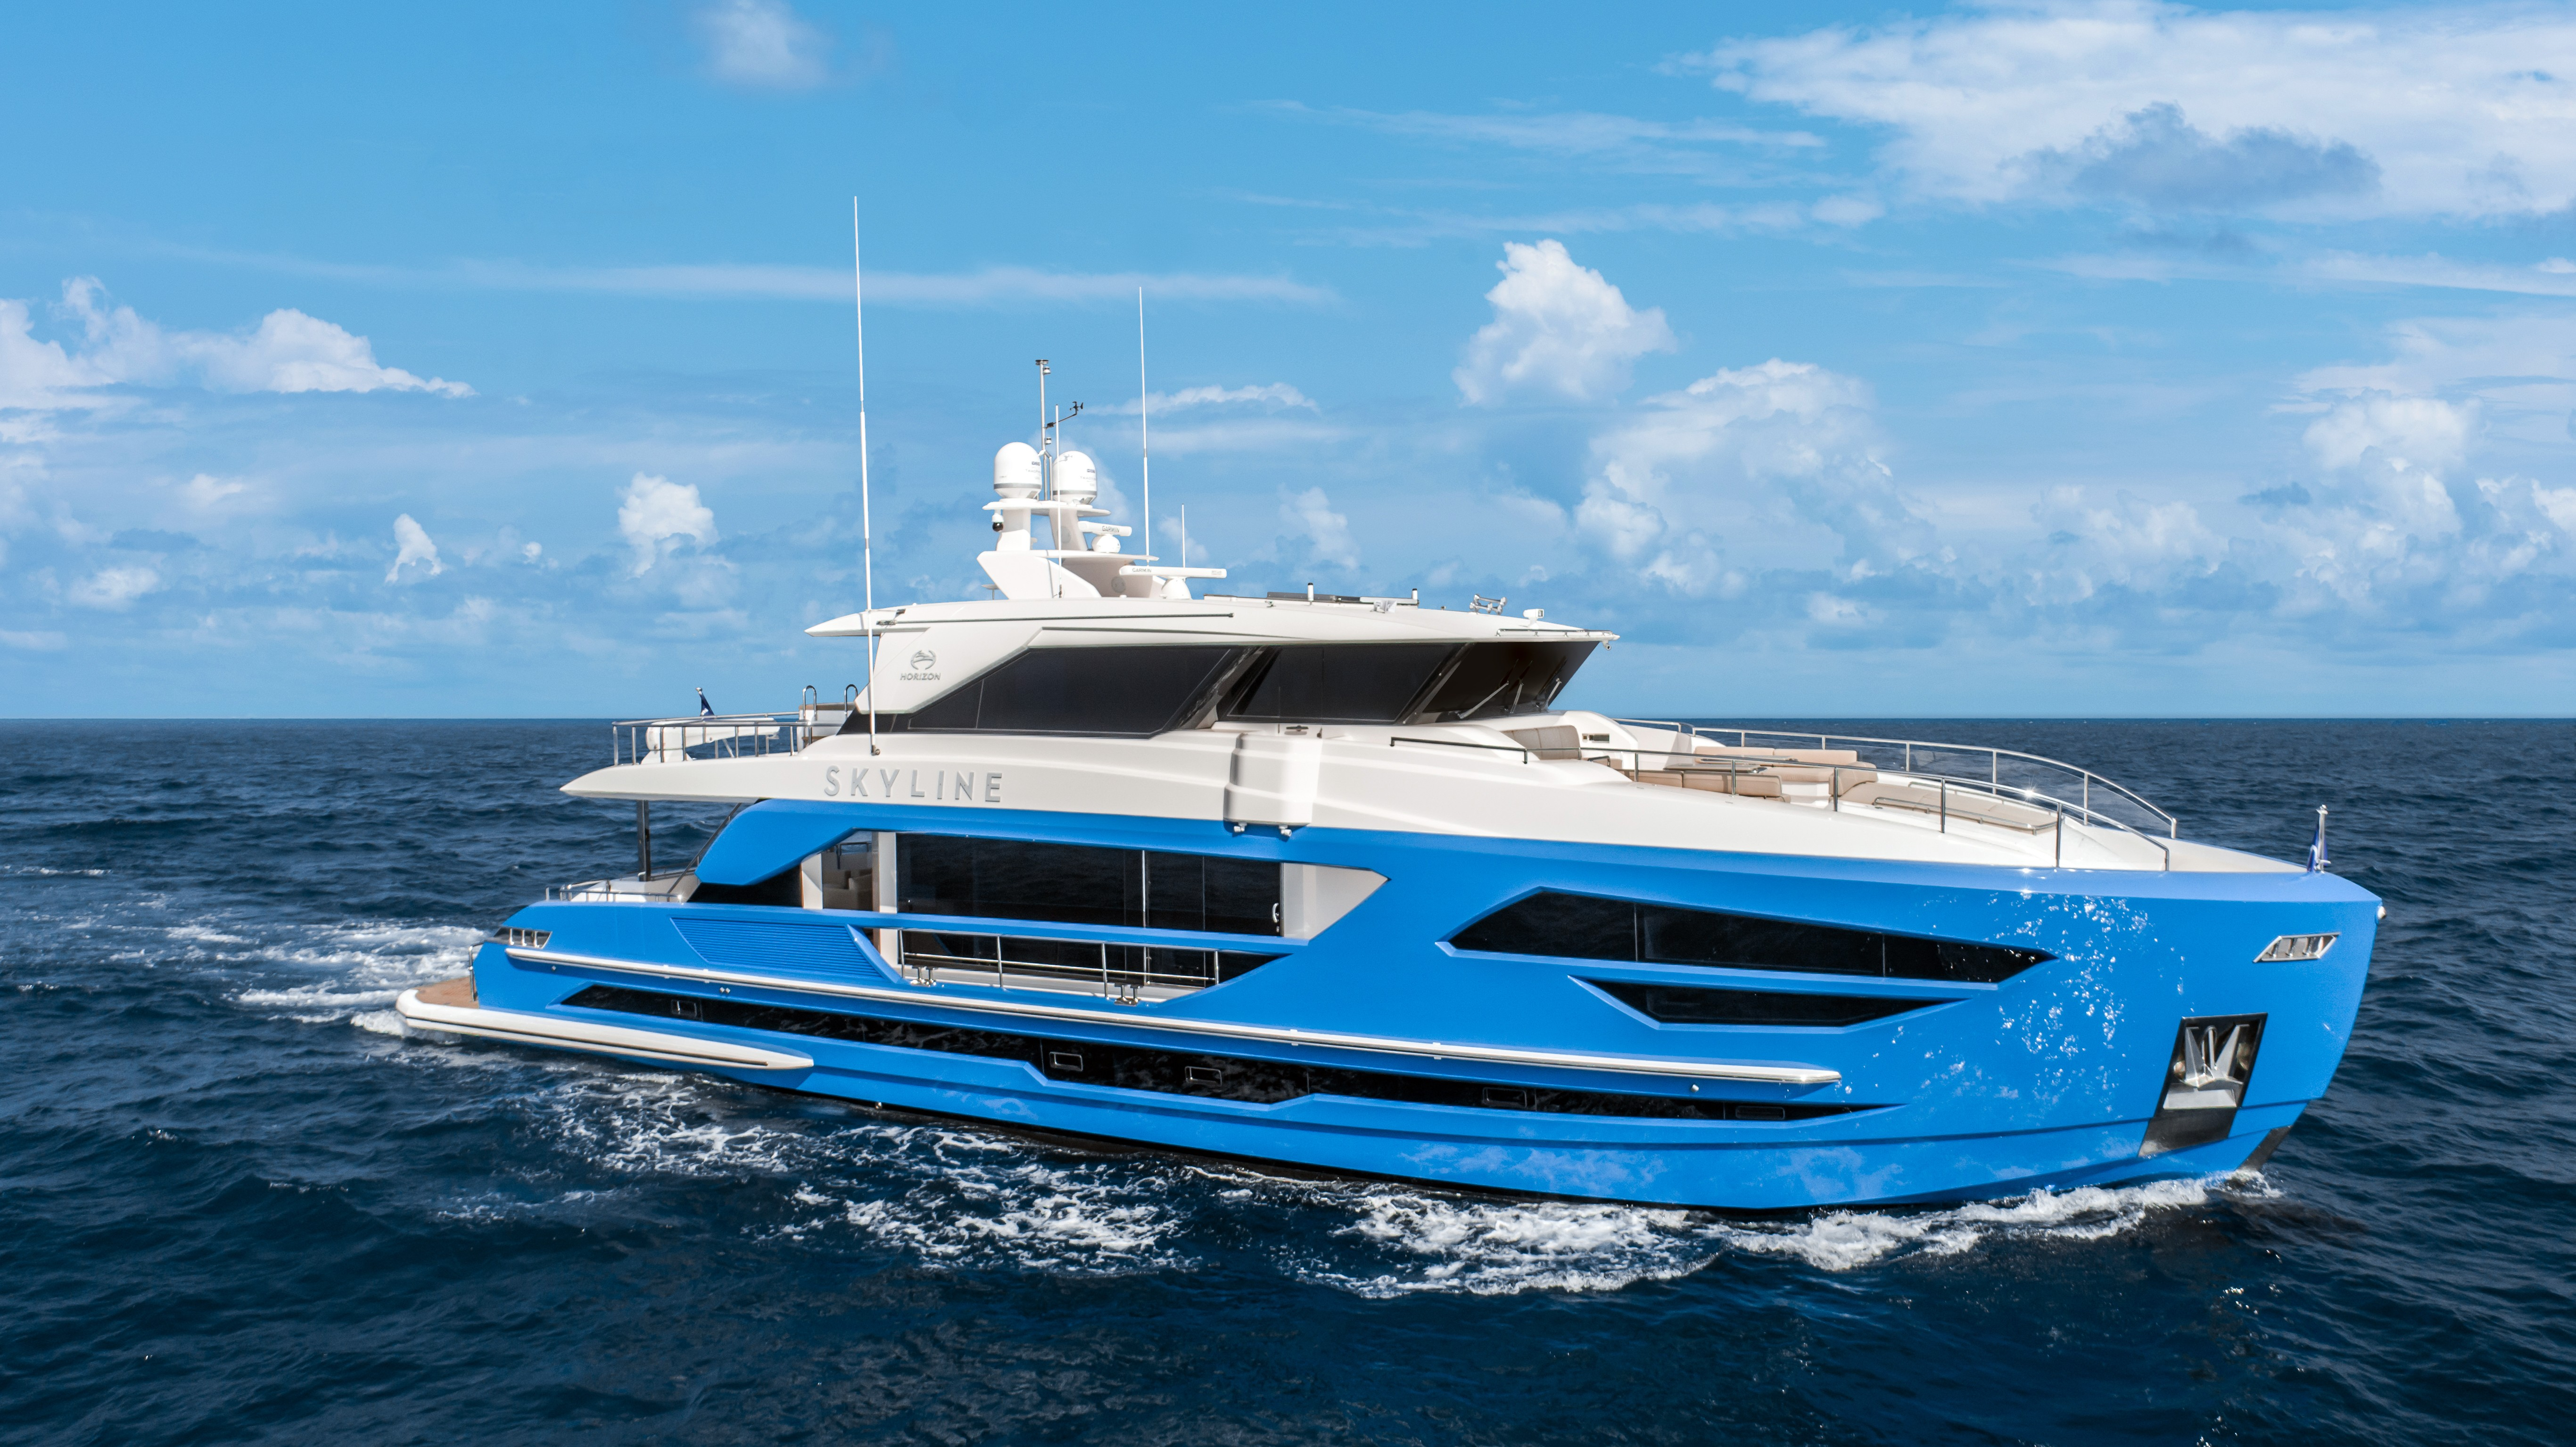 87feet luxury motor yacht